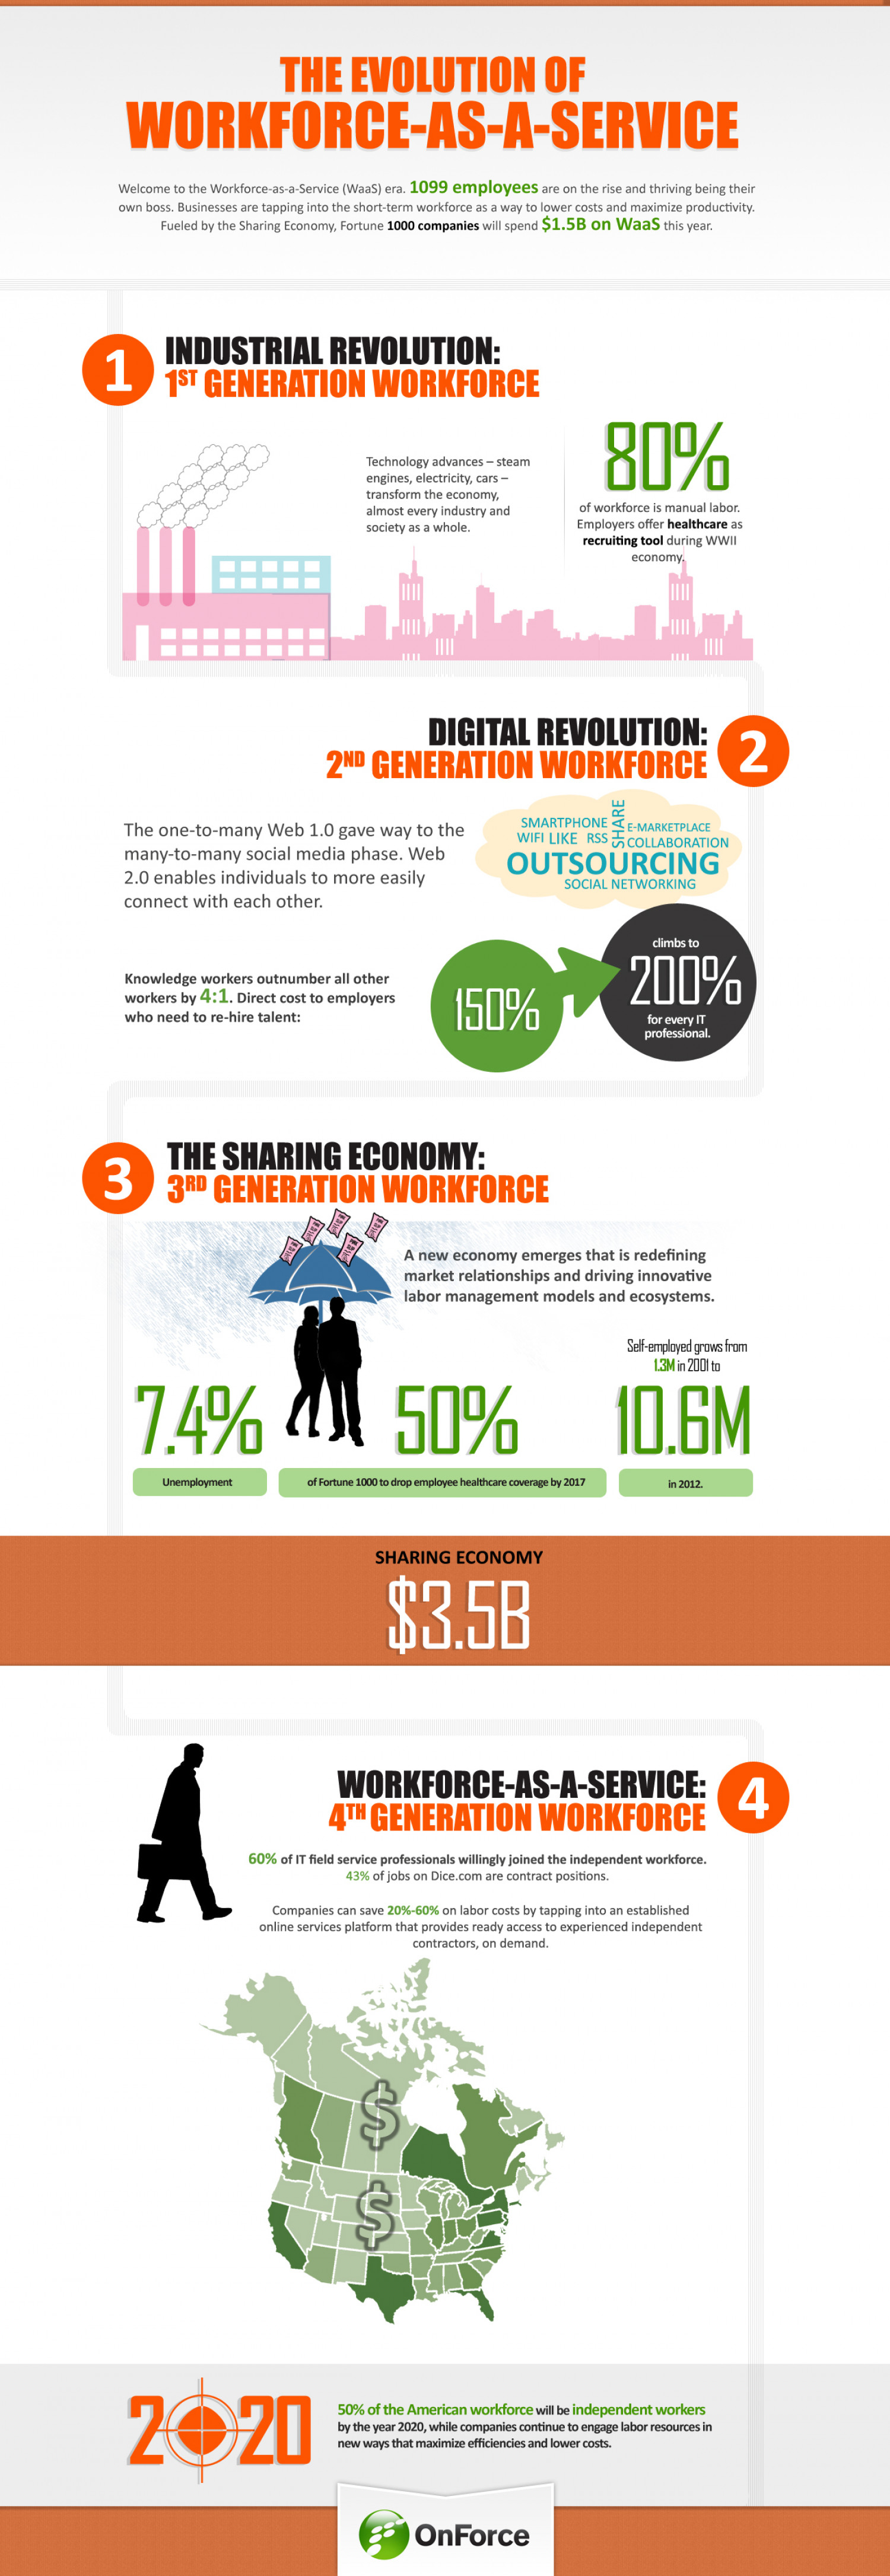 The Evolution of Workforce-as-a-Service Infographic